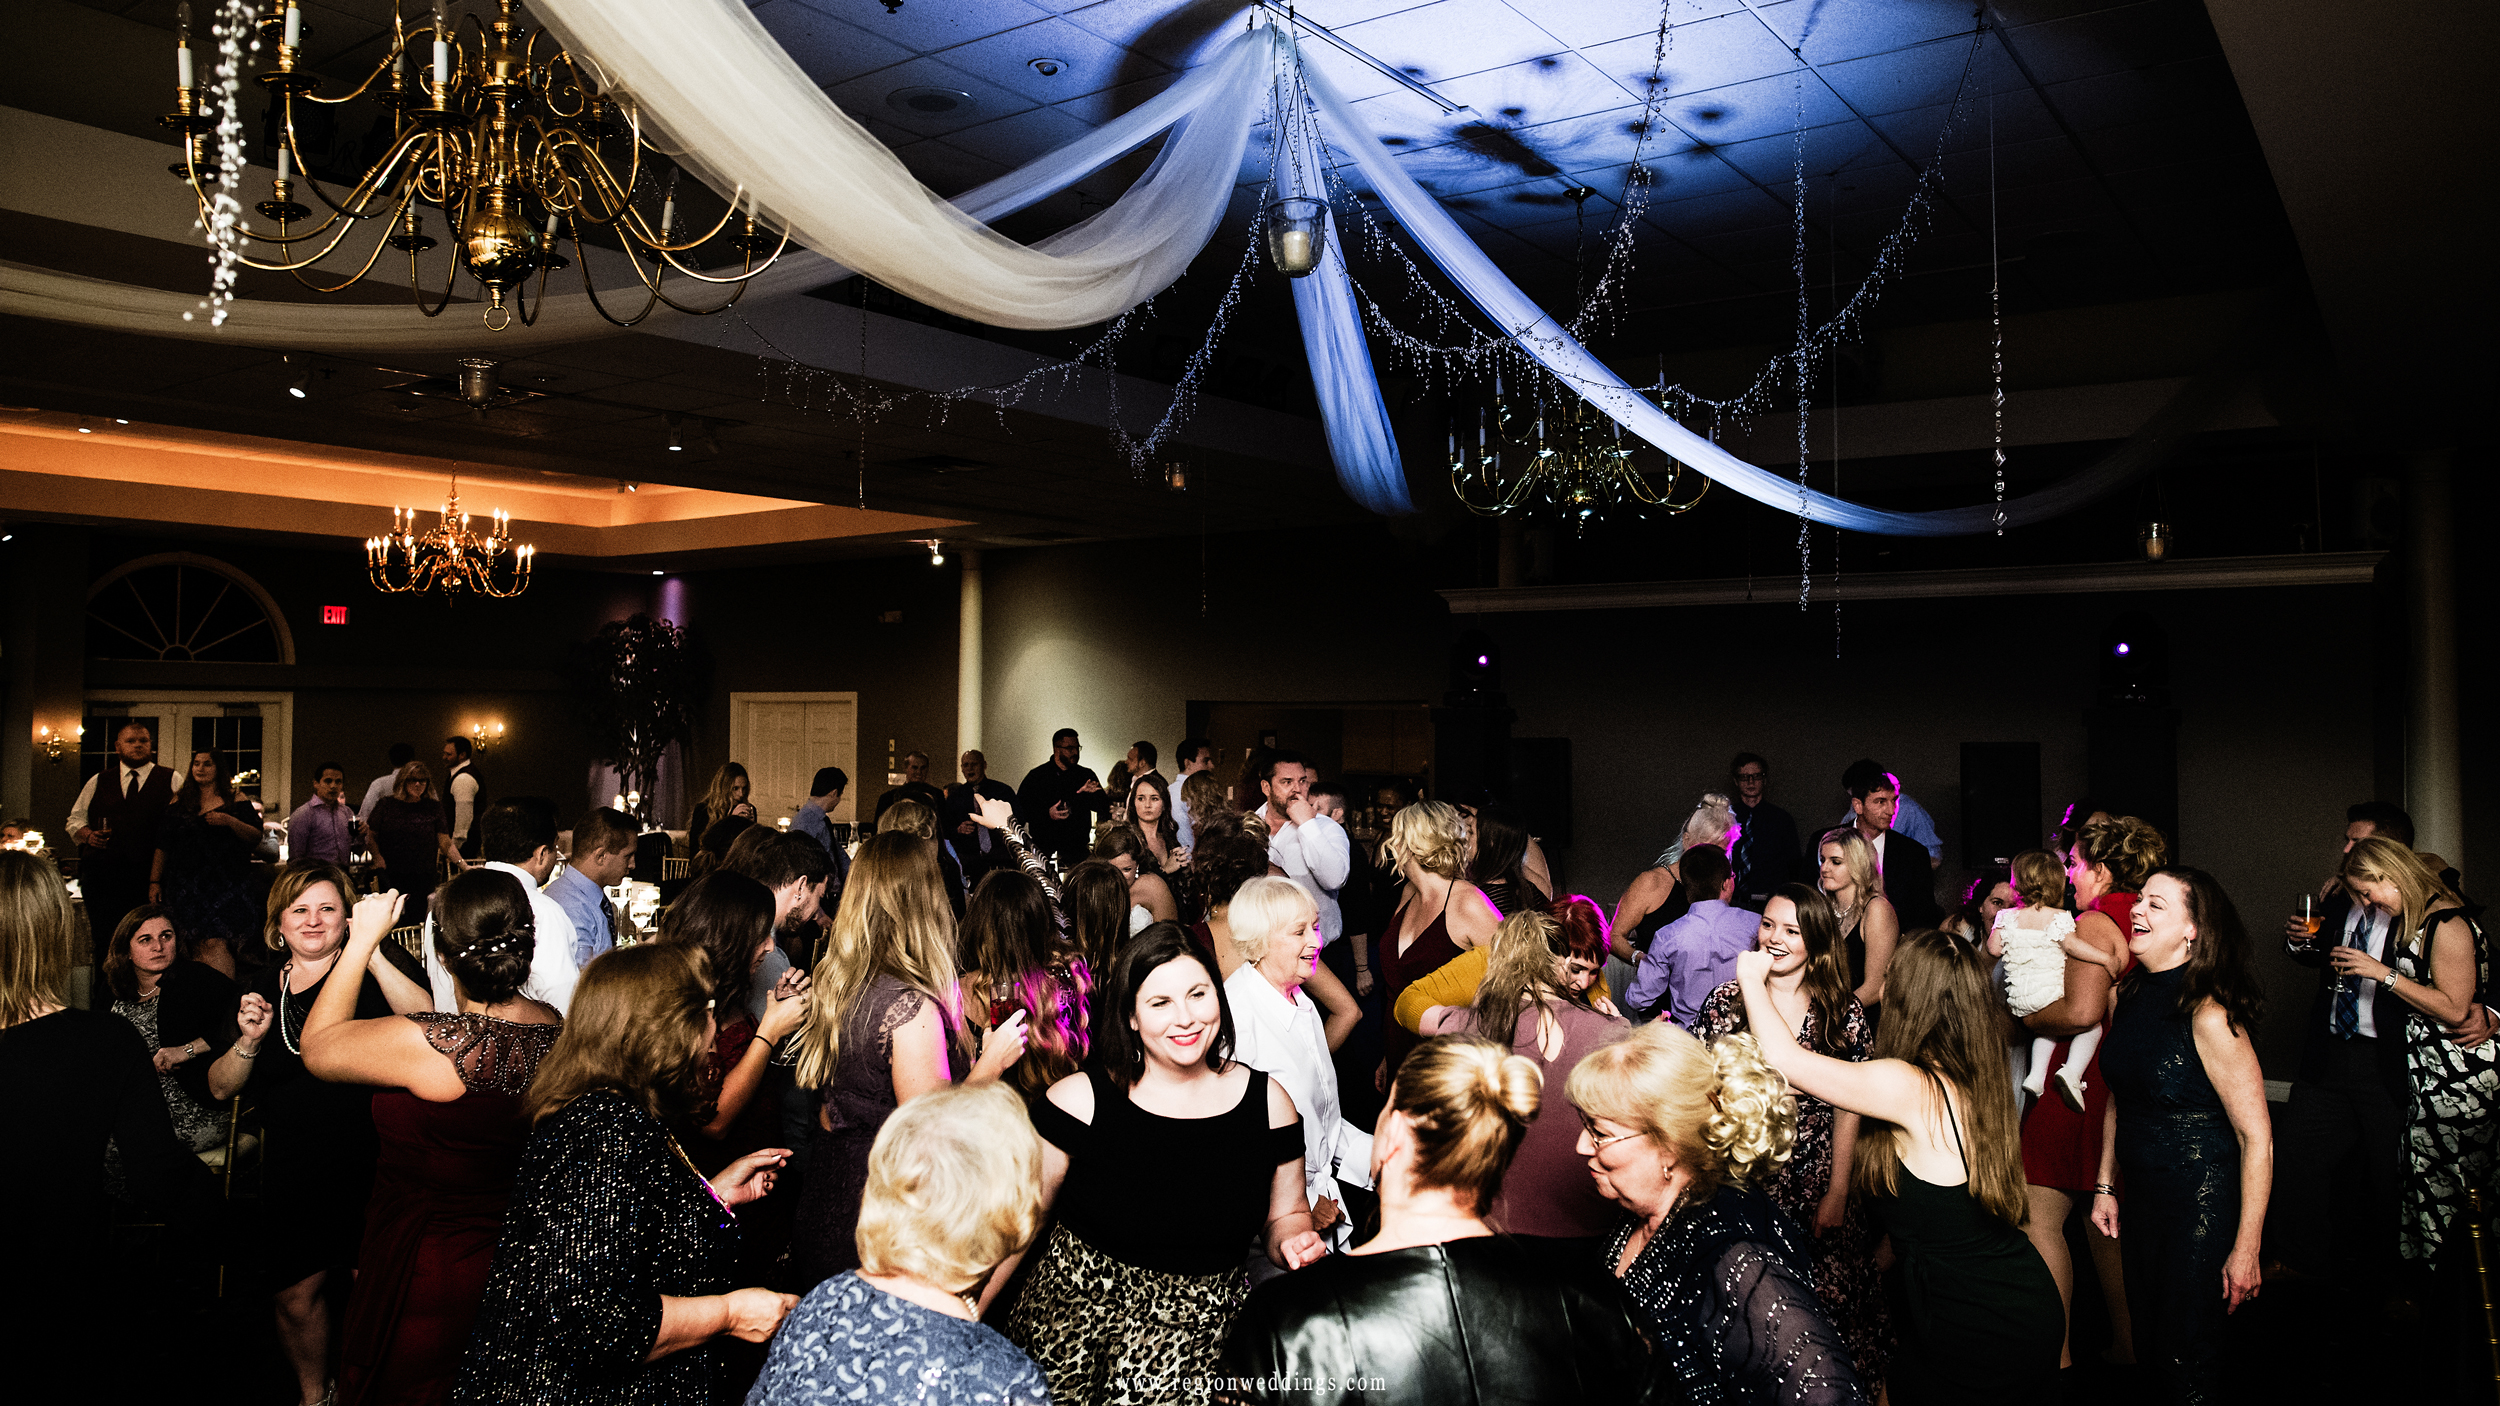 The packed dance floor during a wedding reception at Aberdeen Manor in Valparaiso, Indiana.